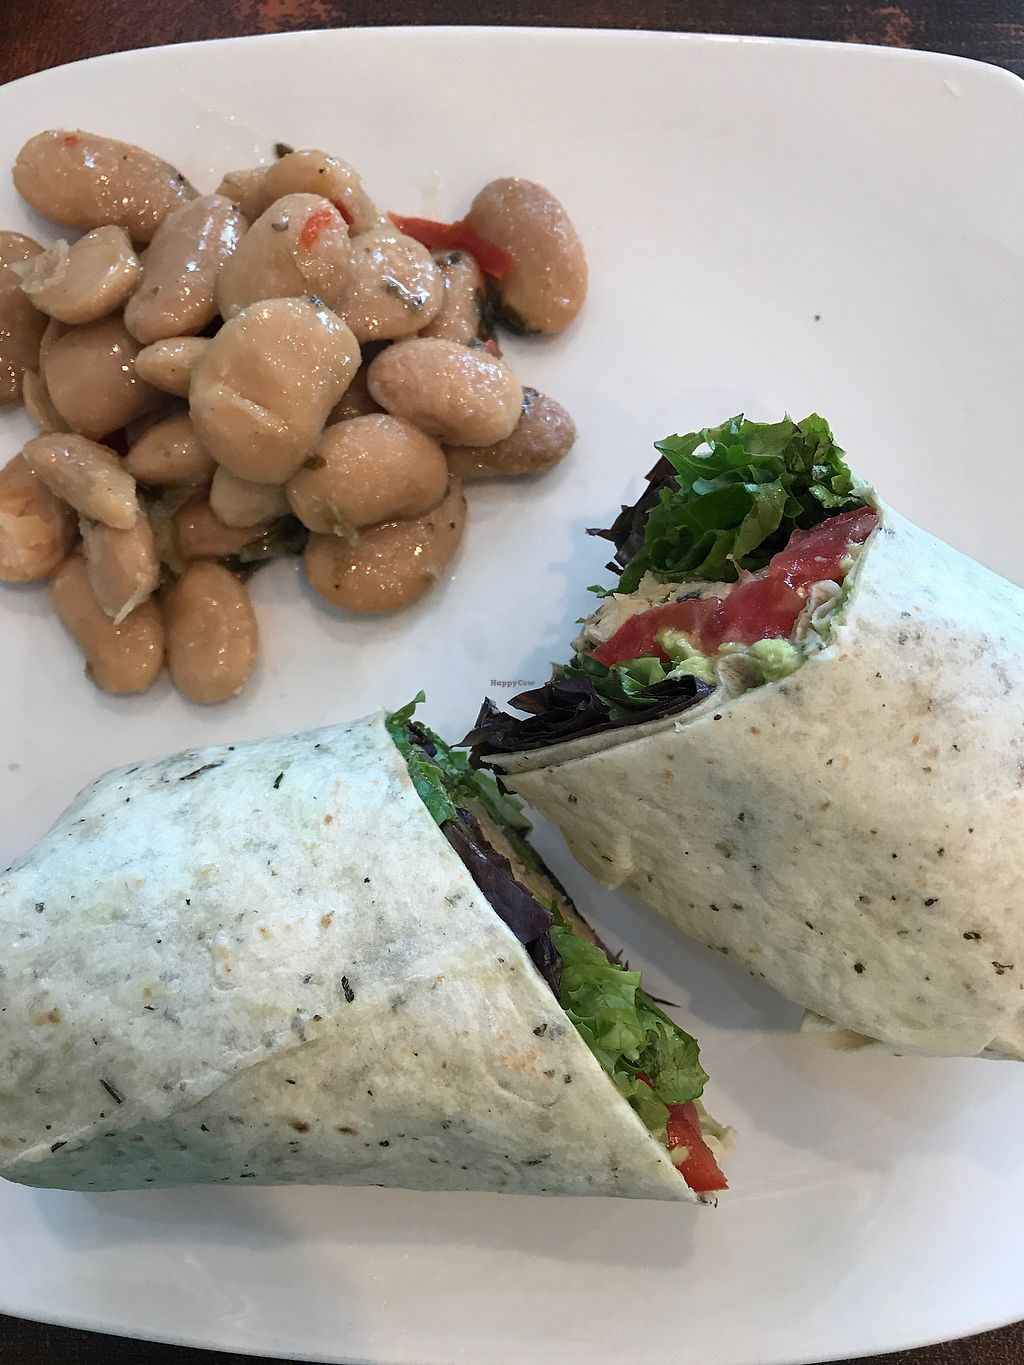 "Photo of The Beanery Cafe and Bakery  by <a href=""/members/profile/MyGreenTongue"">MyGreenTongue</a> <br/>earthy chickpea wrap <br/> September 5, 2017  - <a href='/contact/abuse/image/96991/301222'>Report</a>"